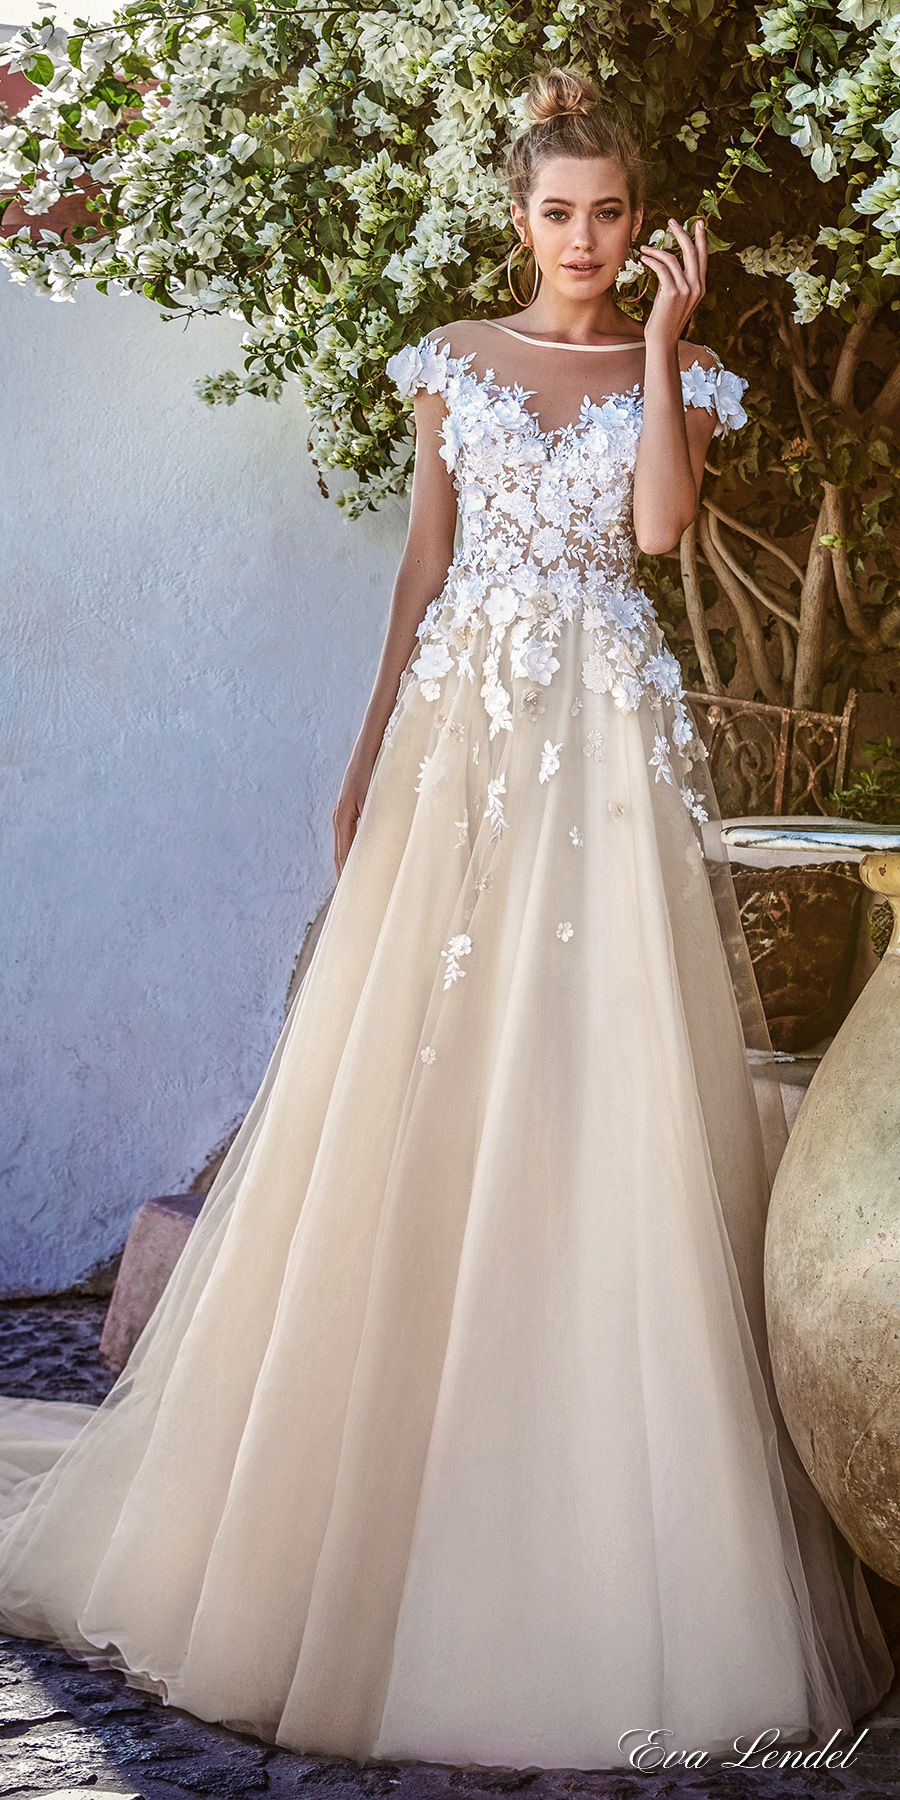 Pin by celia weir on gowns pinterest wedding dress wedding and